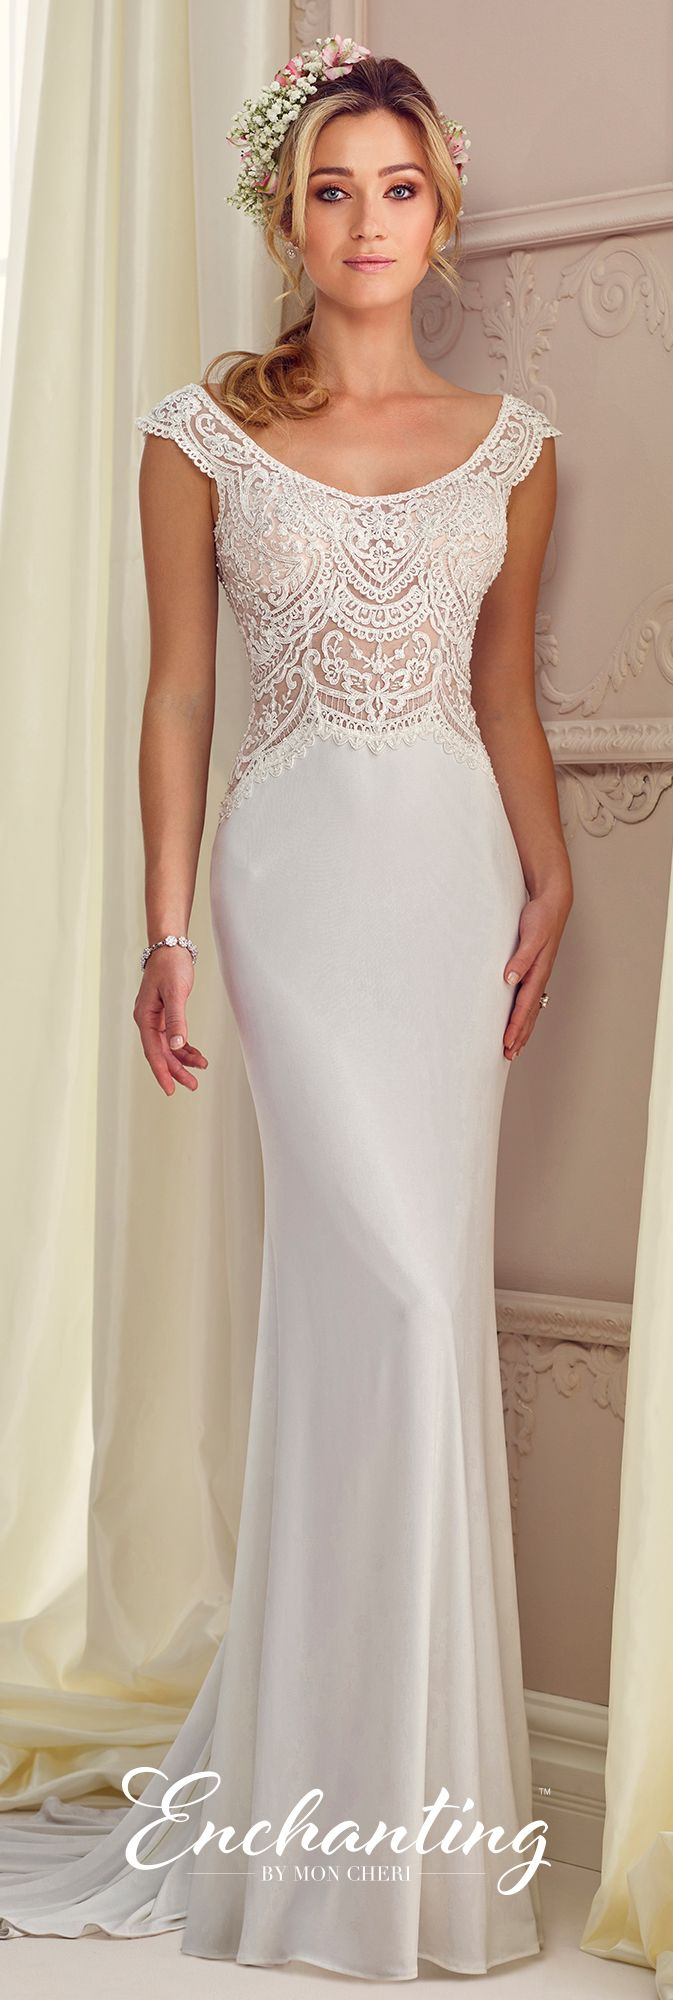 Jersey Fit & Flare Wedding Gown - Enchanting by Mon Cheri 217104 ...